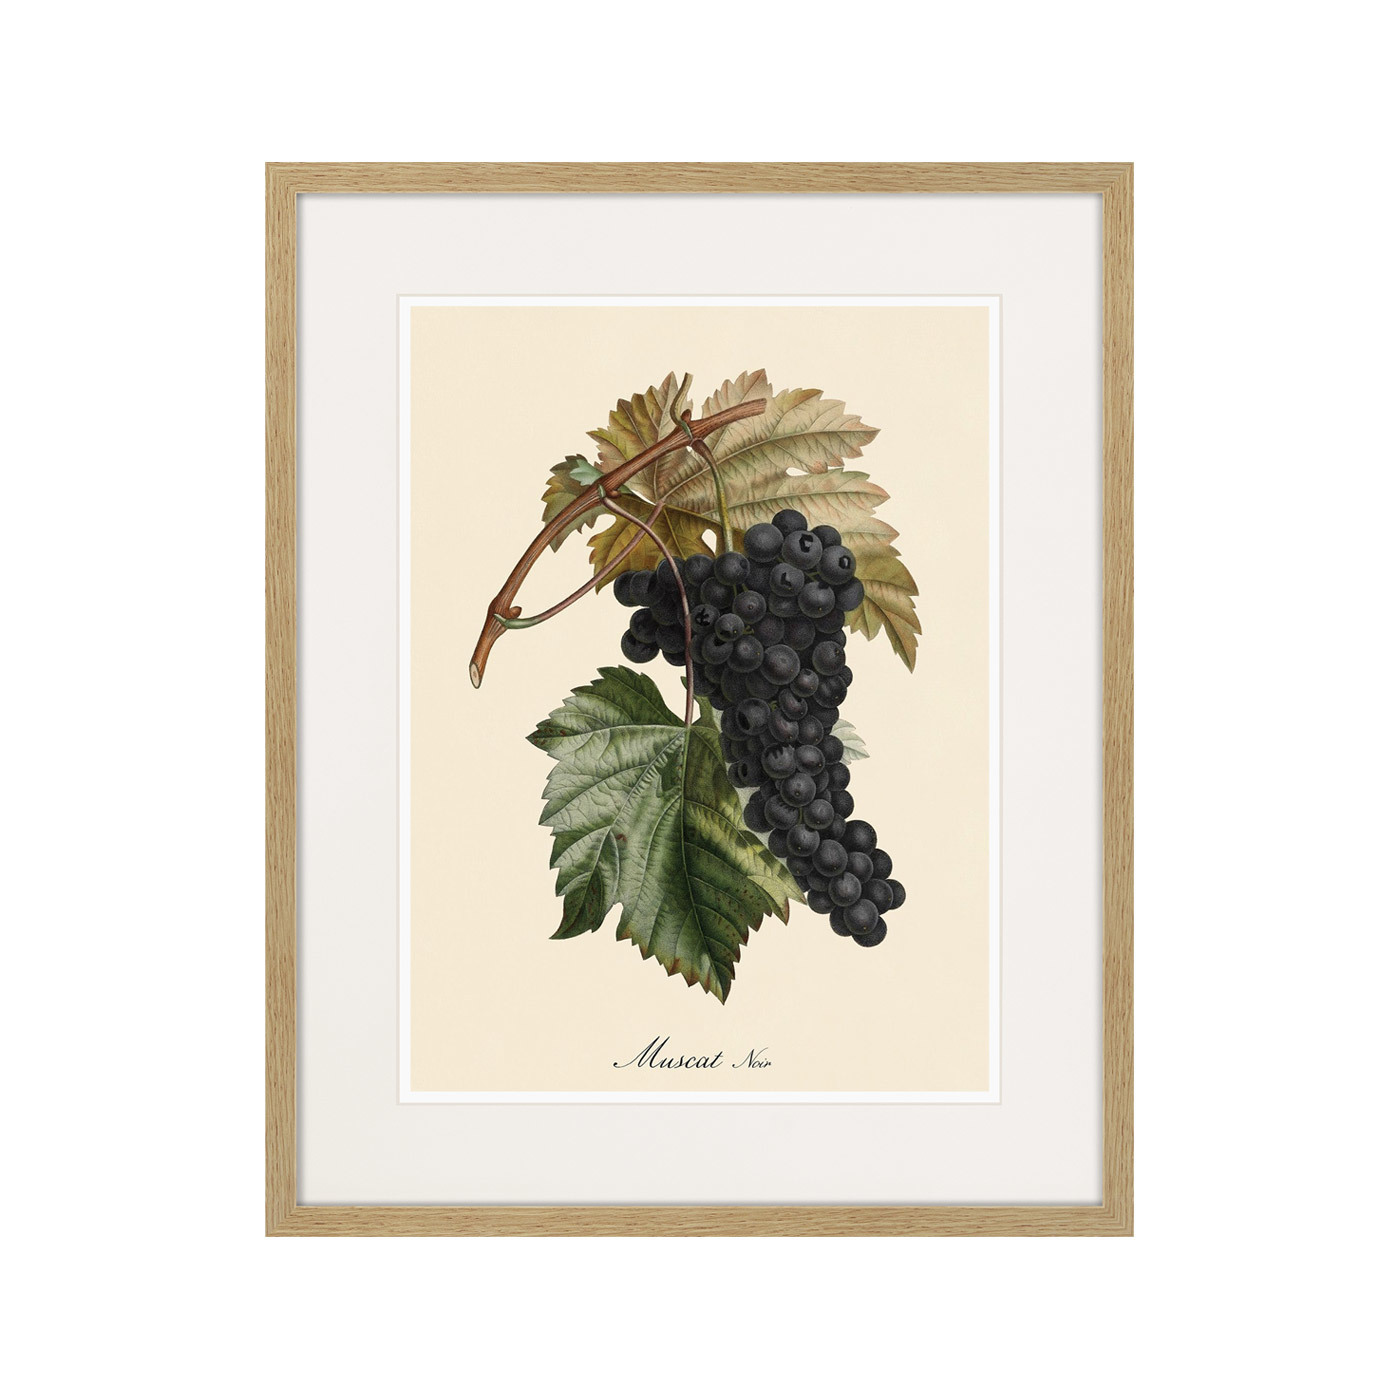 Juicy fruit lithography №12, 1870г.